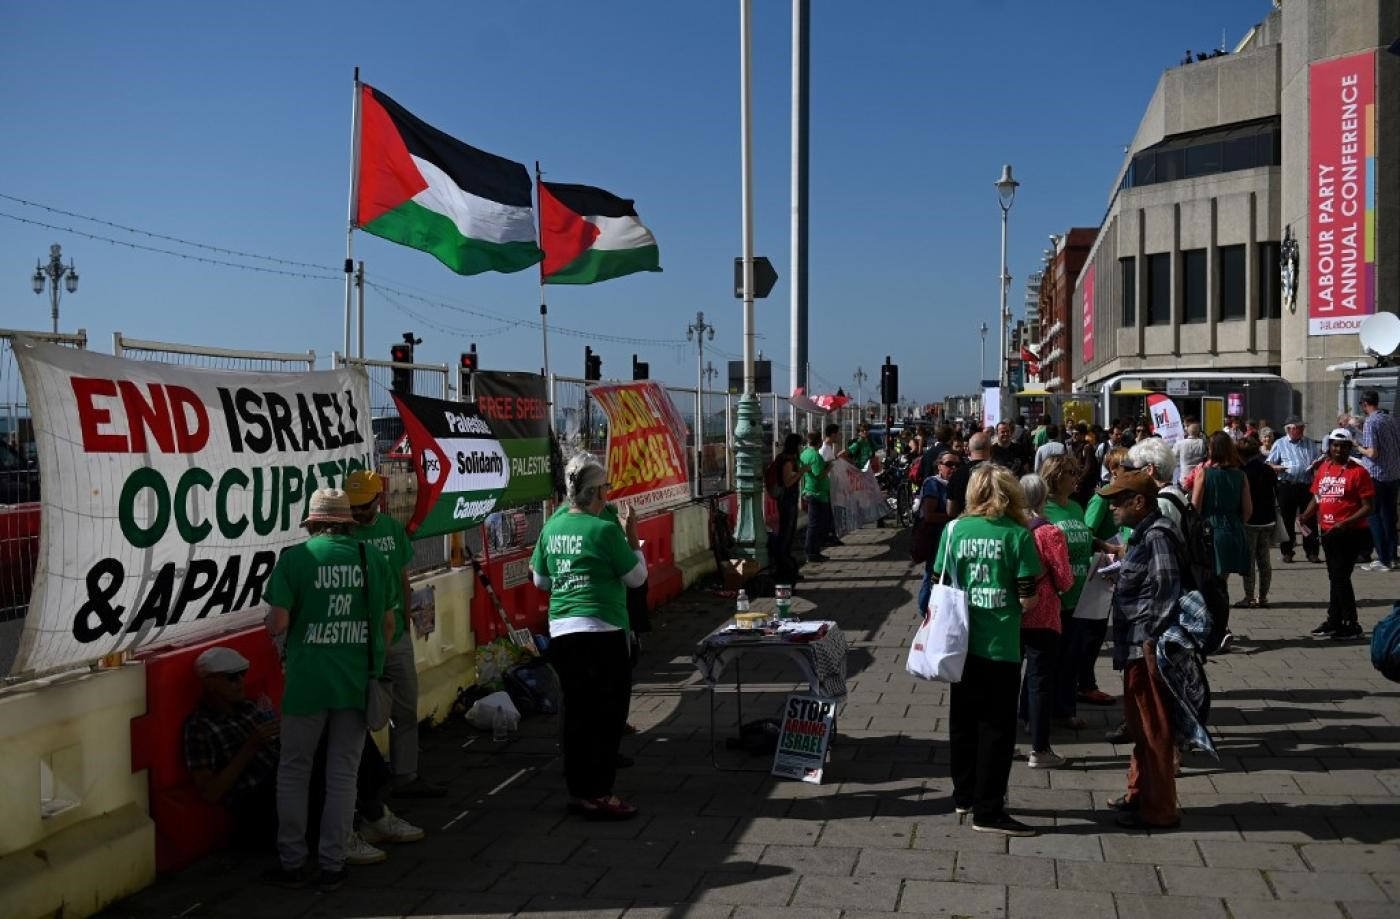 Demonstrators protest outside the Labour party conference in Brighton, on the south coast of England on 21 September 2019 (AFP)